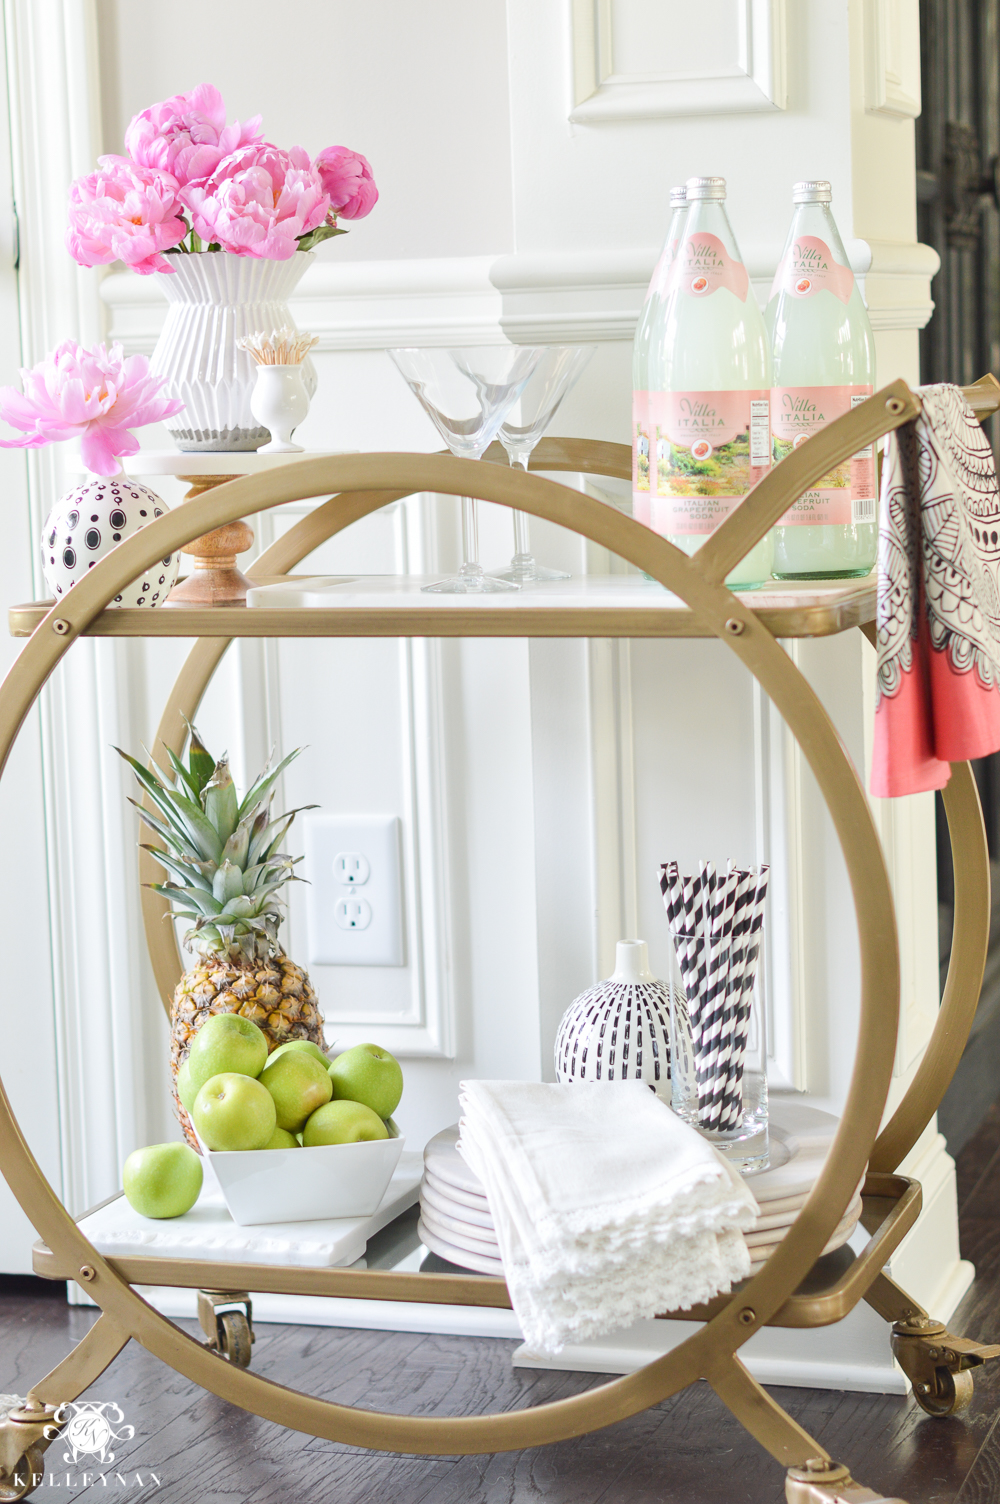 Easy Tropical Bar Cart with Peonies and Pineapple-how to style a bar cart